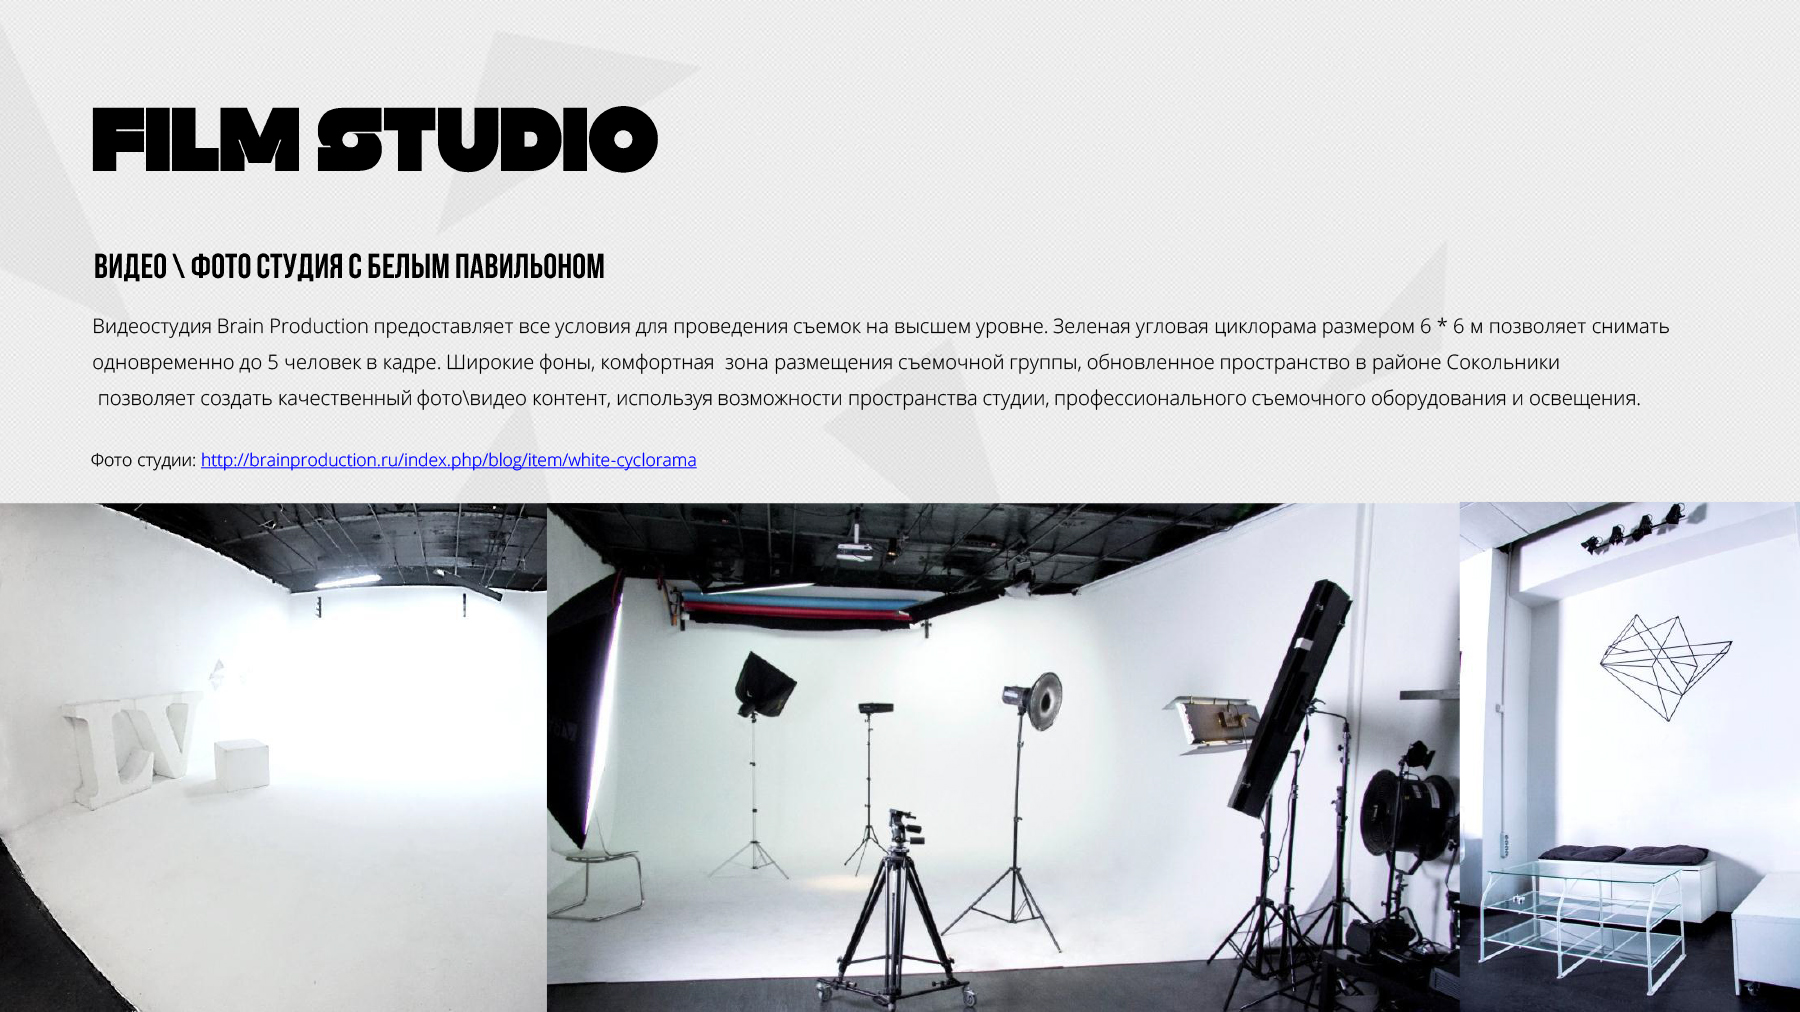 FILM_STUDIO-rent-cyclorama